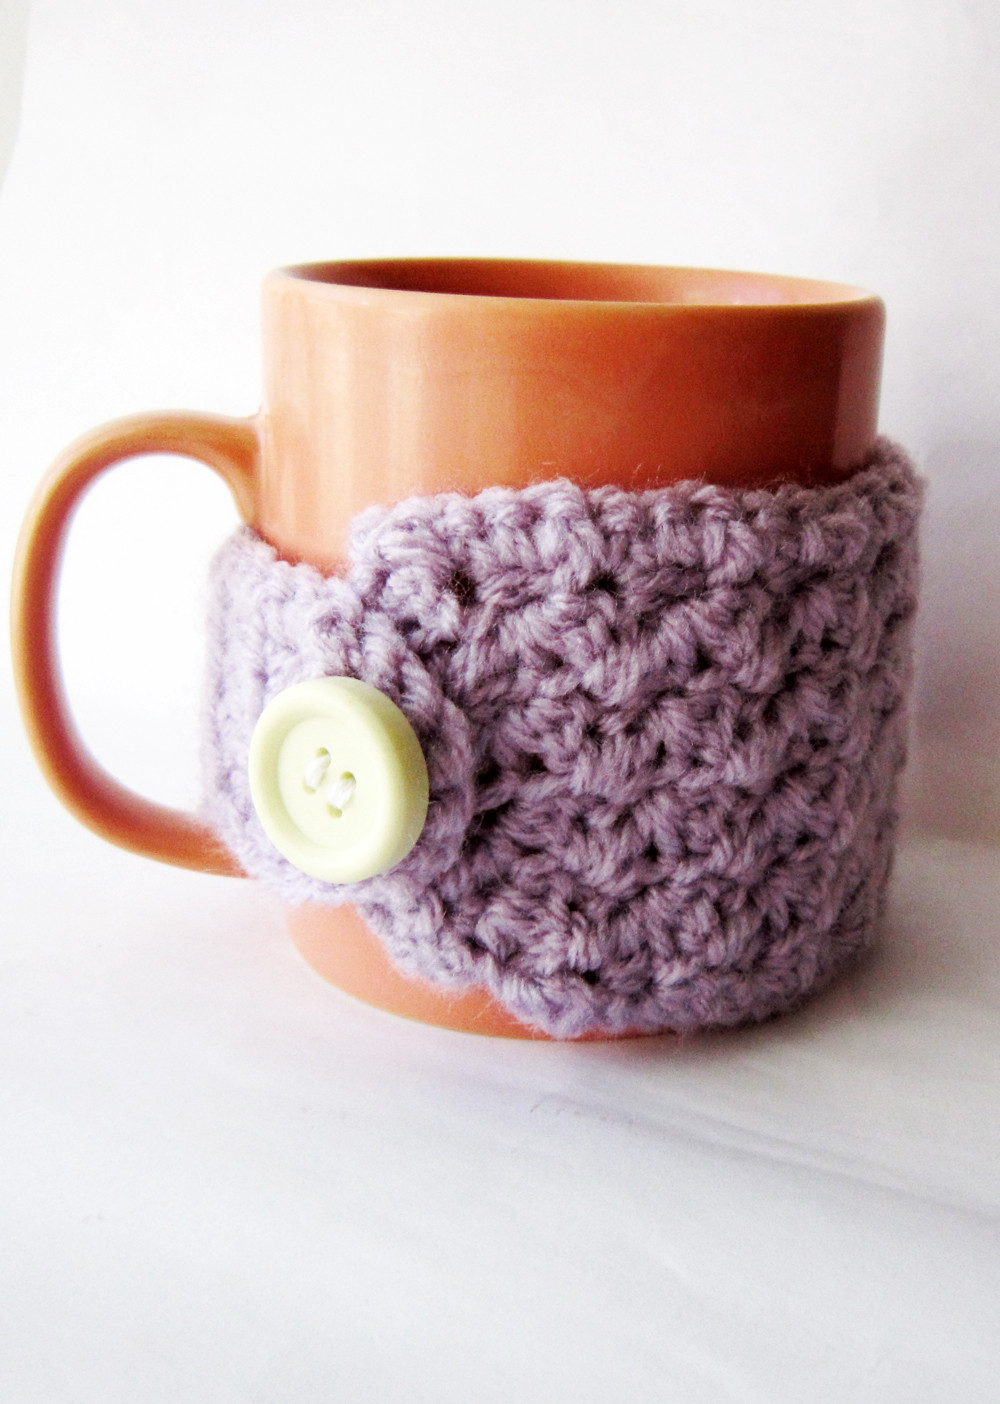 Crochet Coffee Cup Cozy Inspirational Easy Crochet Mug Cozy Free Pattern Akamatra Of Crochet Coffee Cup Cozy Elegant Basketweave Cup Cozy Crochet Pattern with